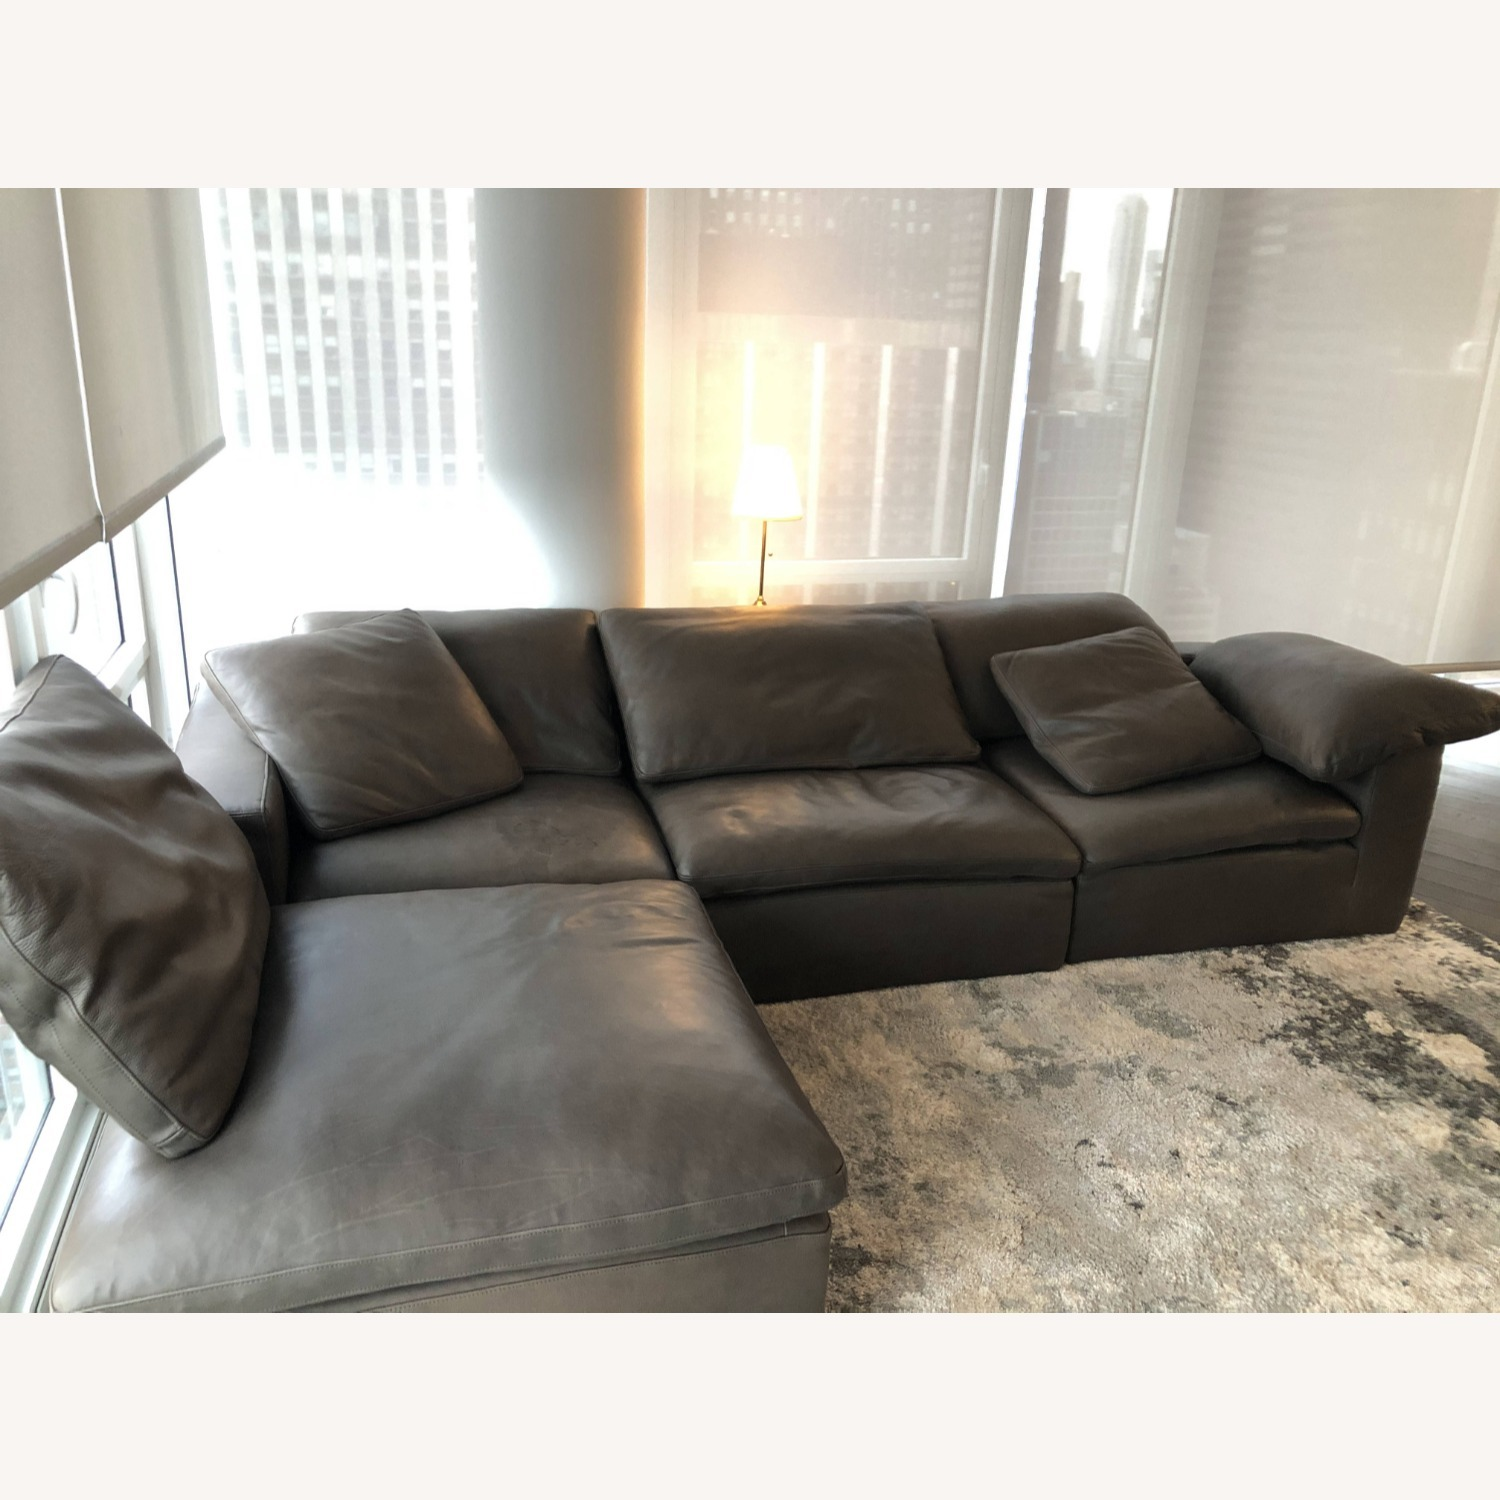 Restoration Hardware Leather Sectional Couch - image-1